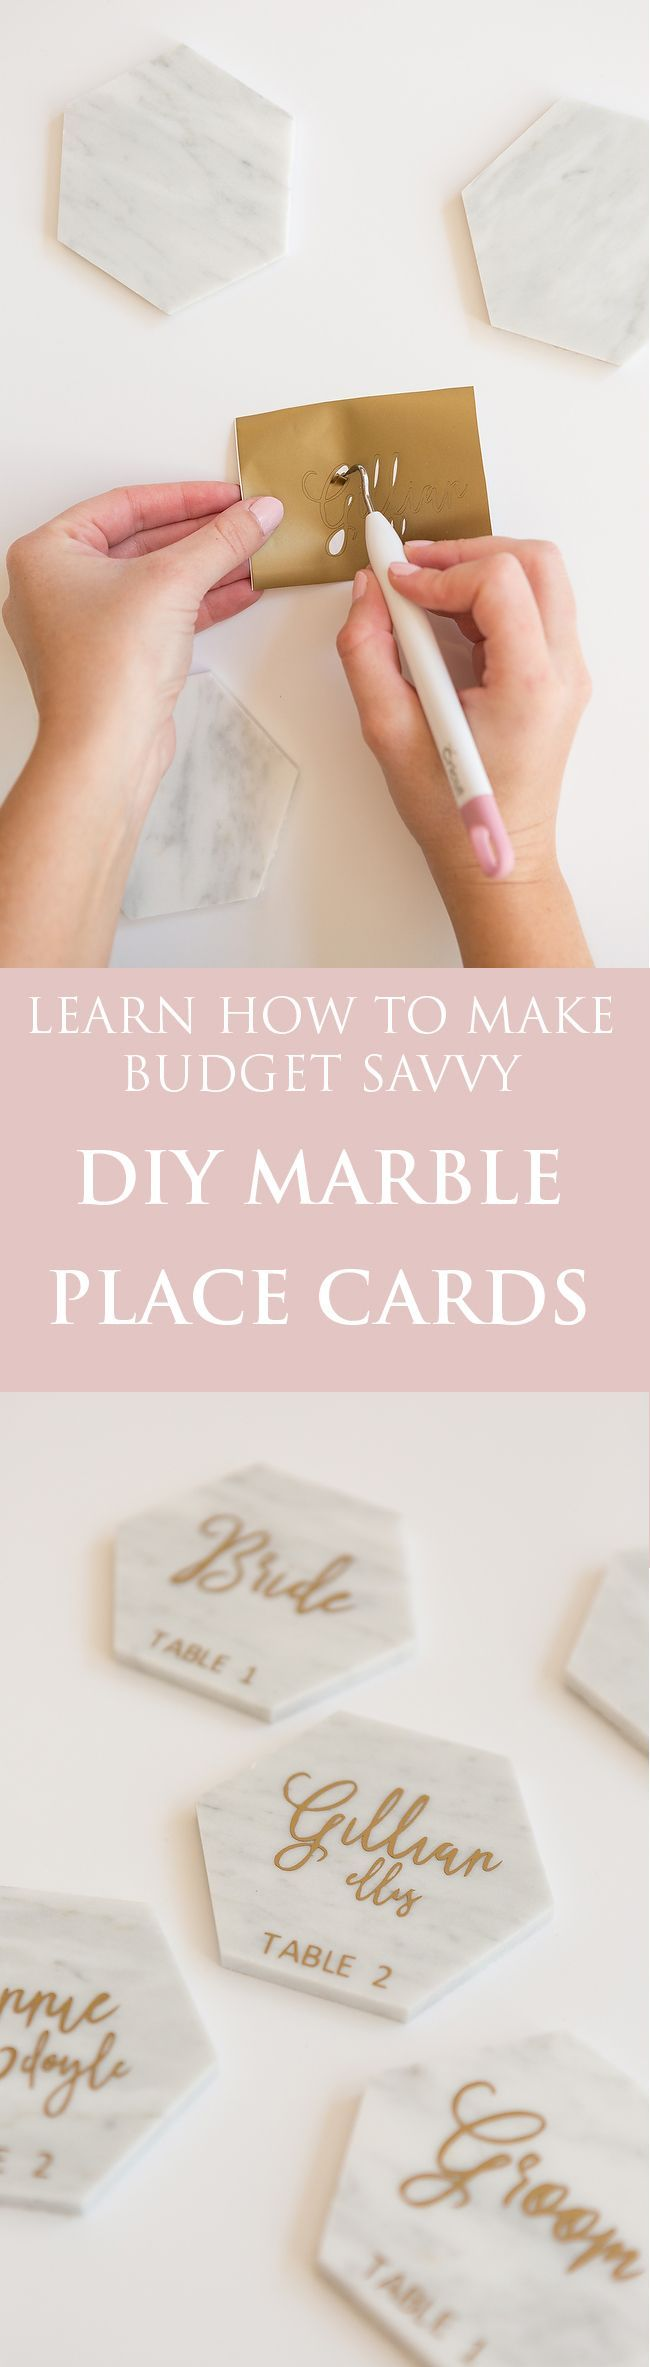 Budget Savvy DIY Marble Place Cards